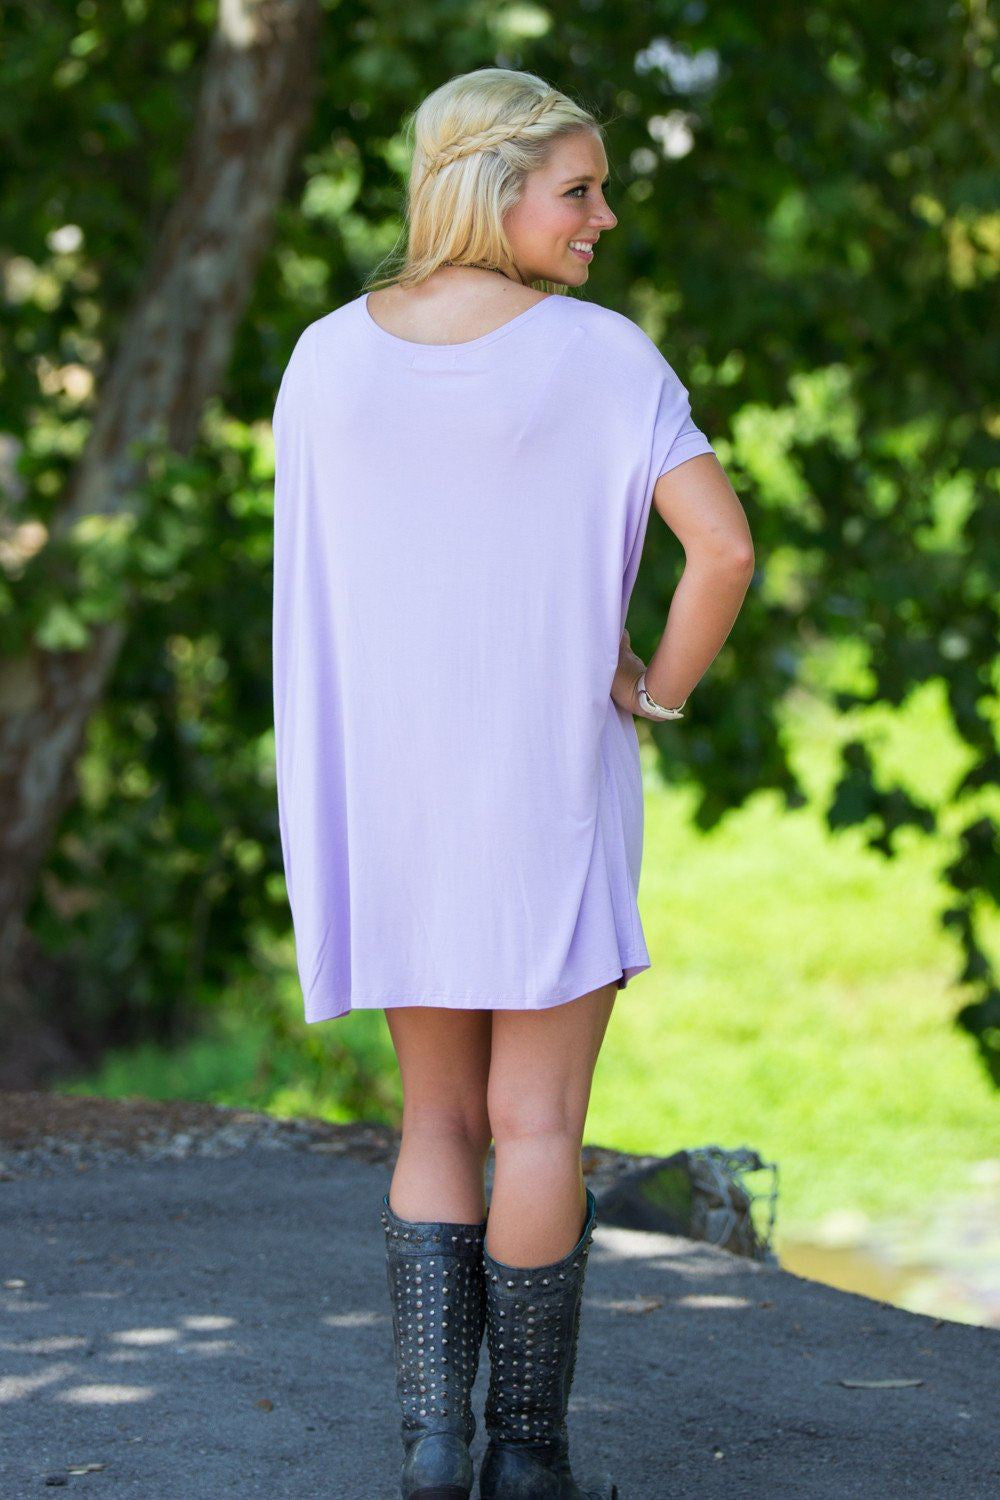 Short Sleeve Piko Tunic - Lilac - Piko Clothing - 2